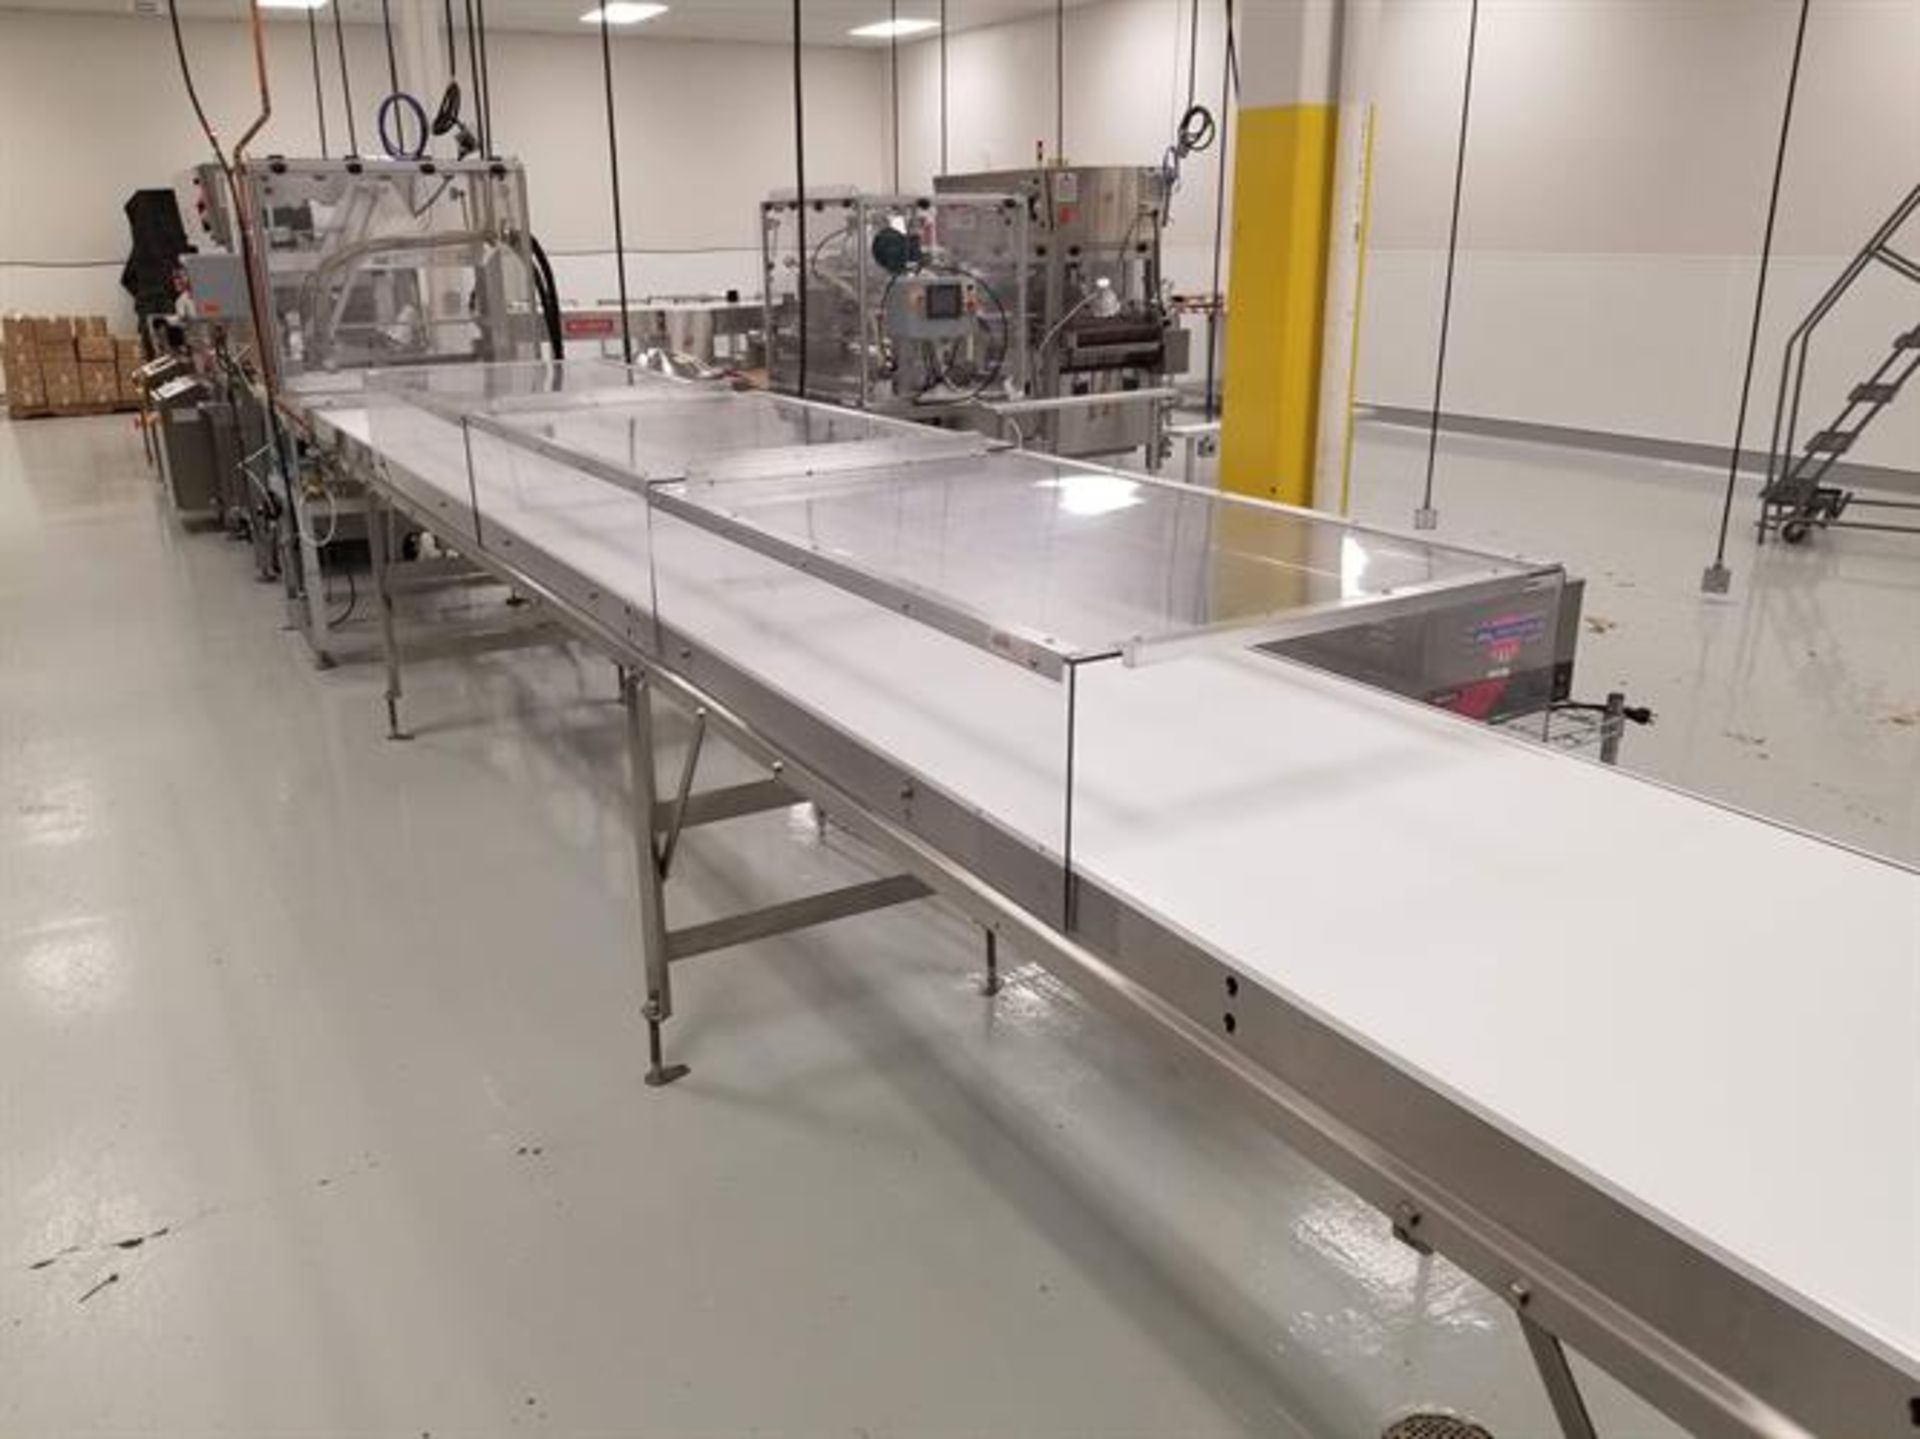 """Savage 24"""" Stainless Steel Enrobing Line - New 2016 Smith 24"""" wide x 8-ft long Stainless Steel - Image 7 of 8"""